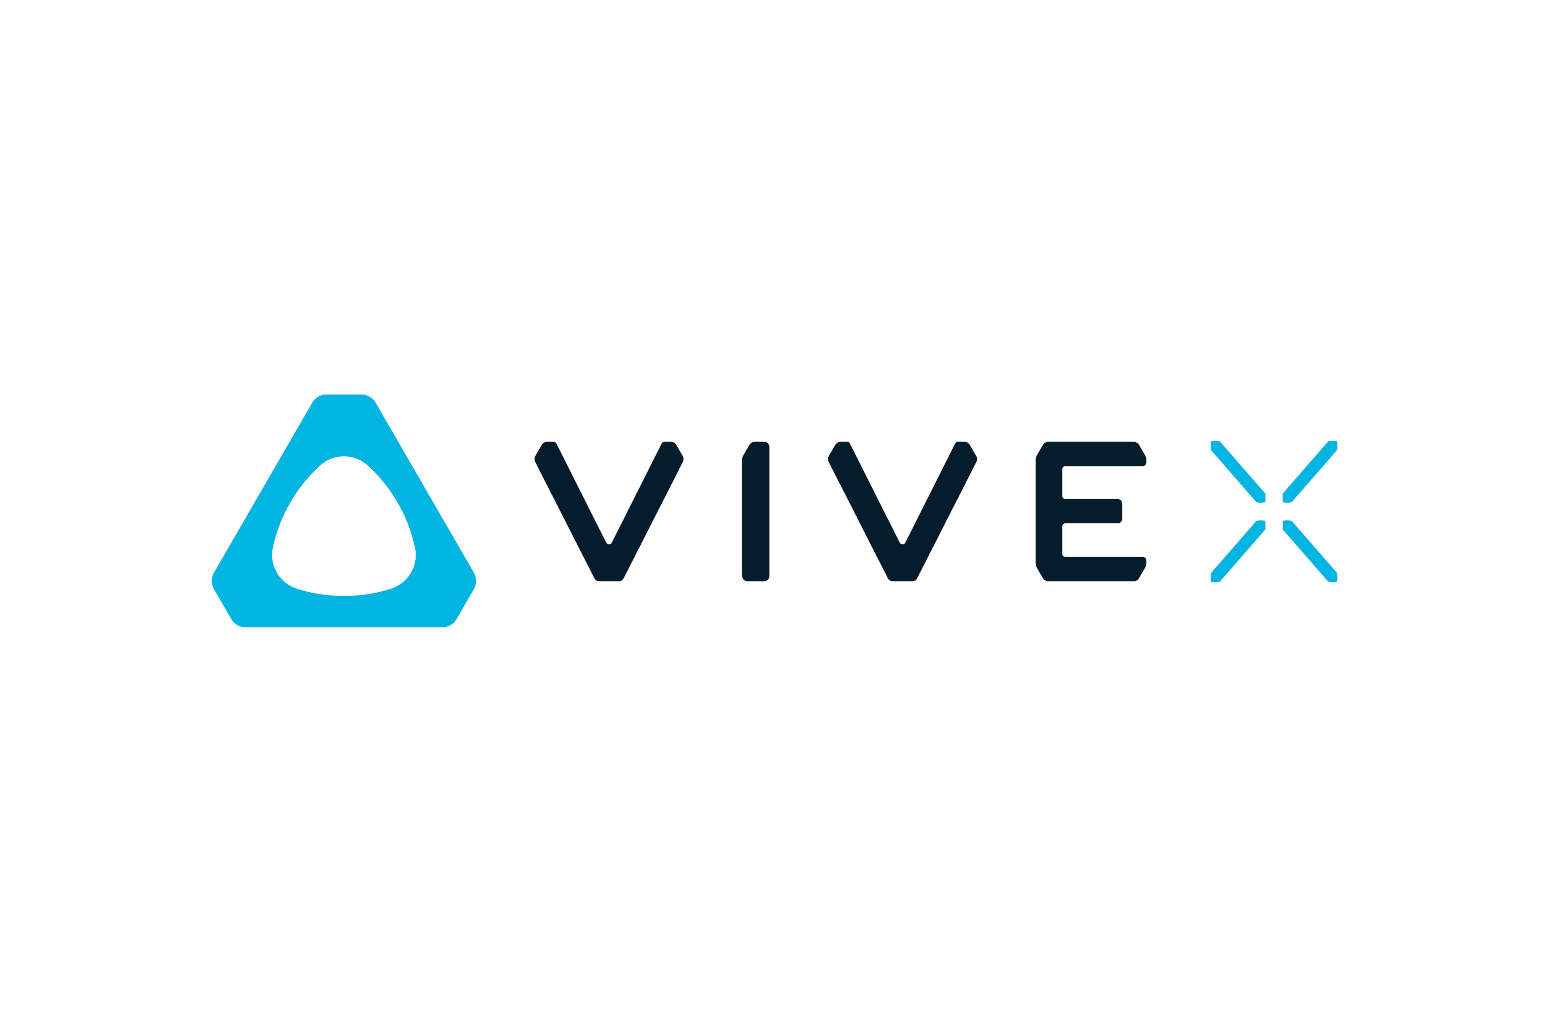 HTC Vive Invests In More VR Companies Through The Vive X Accelerator Program